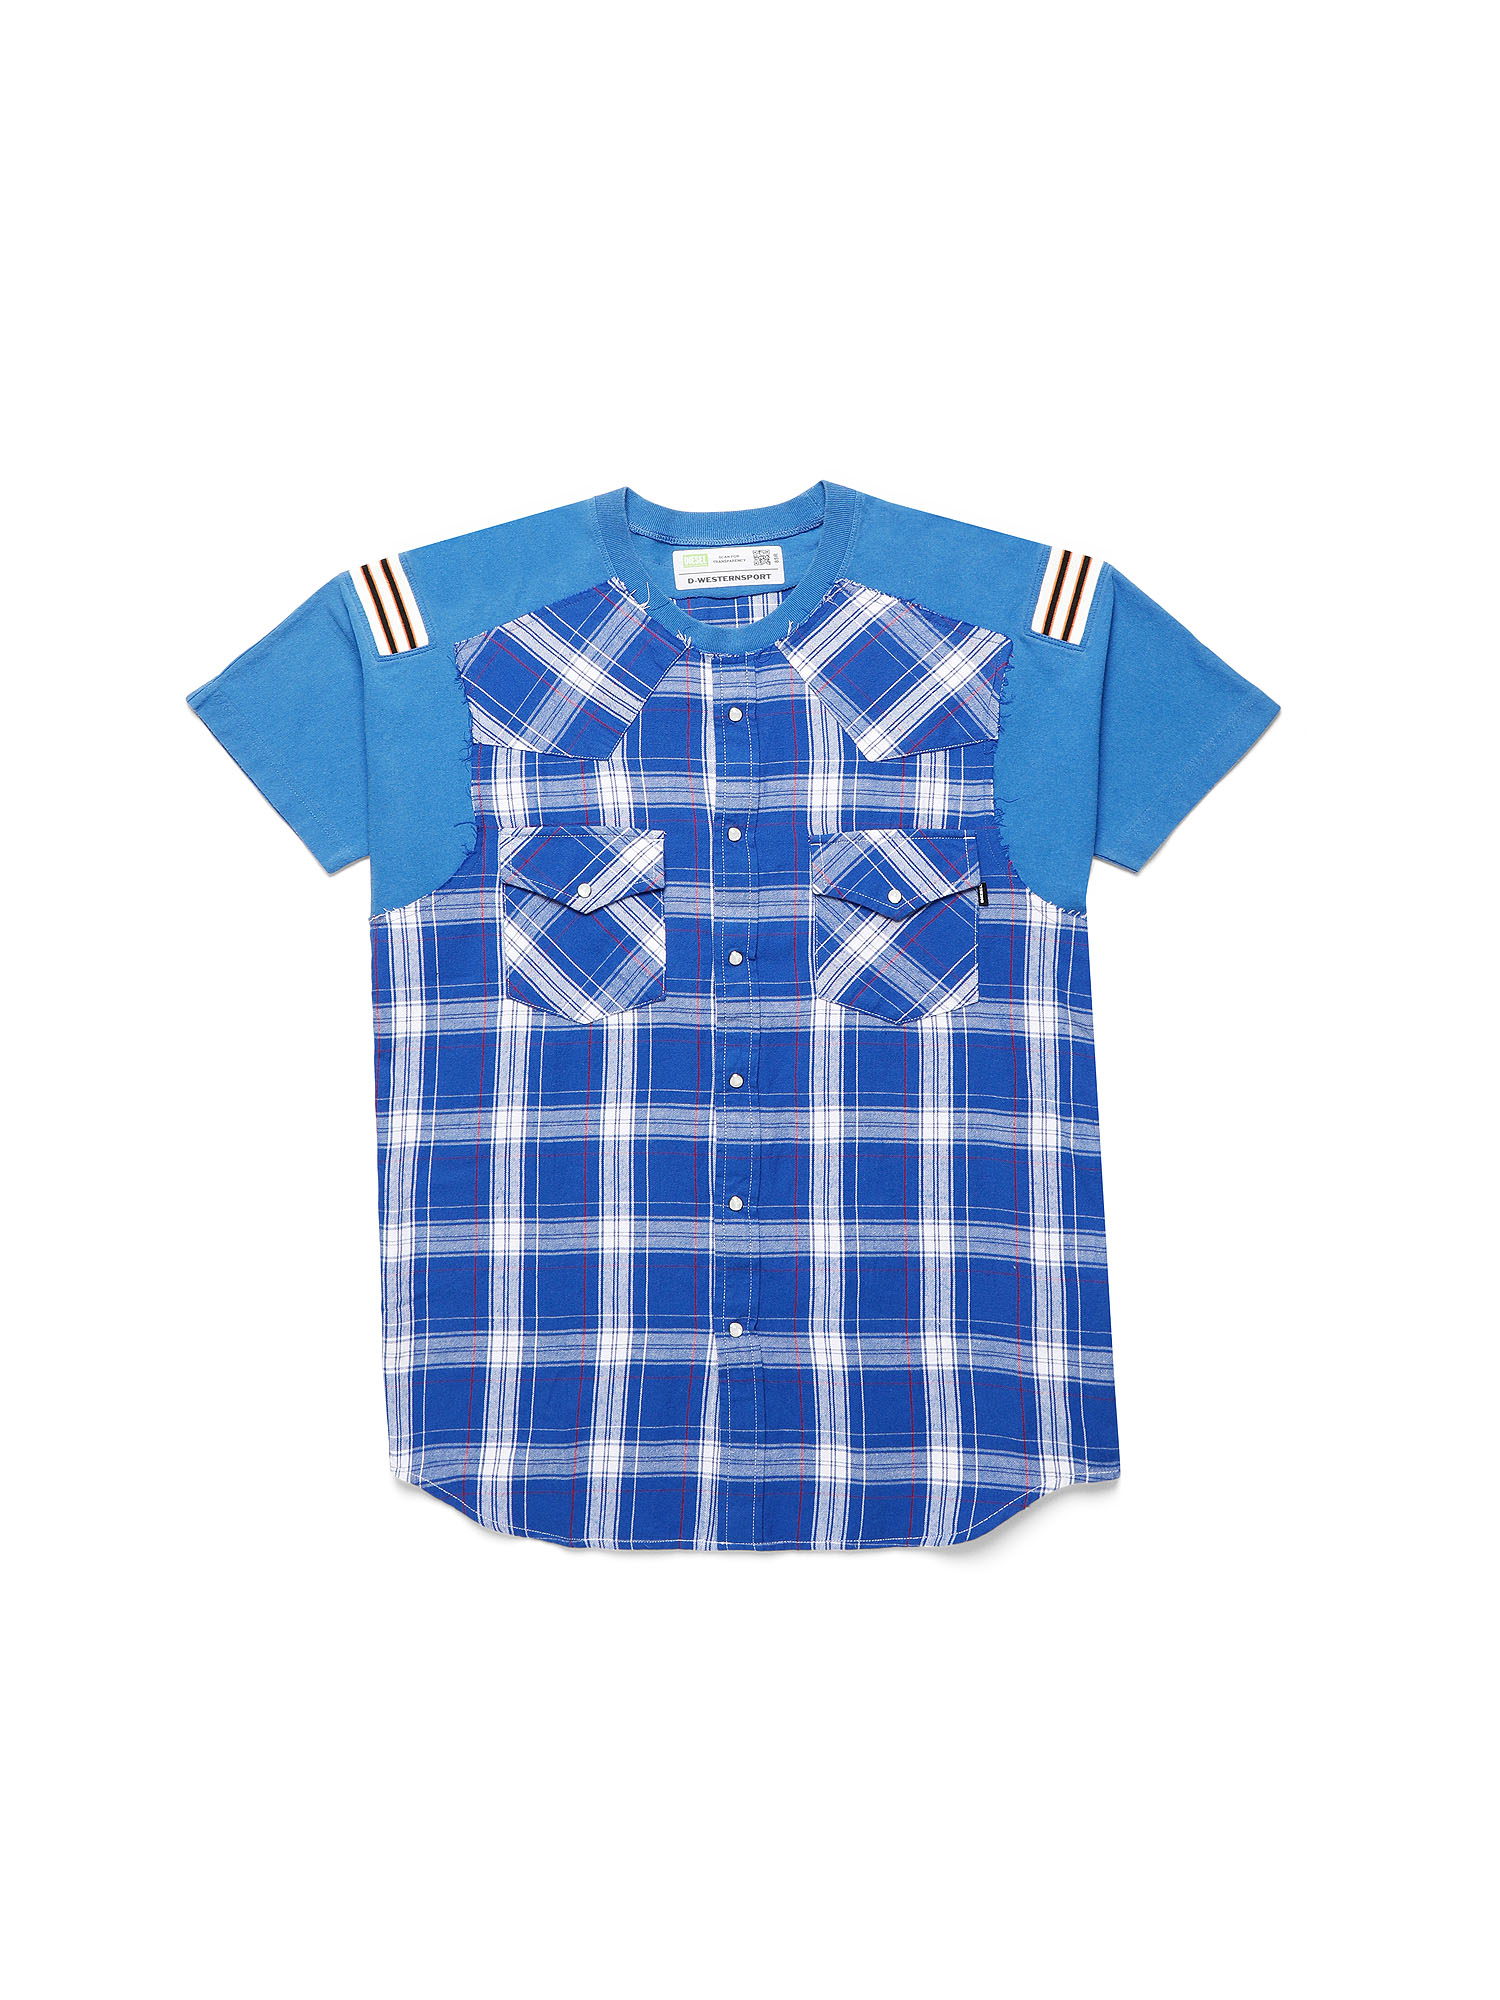 Diesel - D-WESTERNSPORT, Light Blue - T-Shirts - Image 1